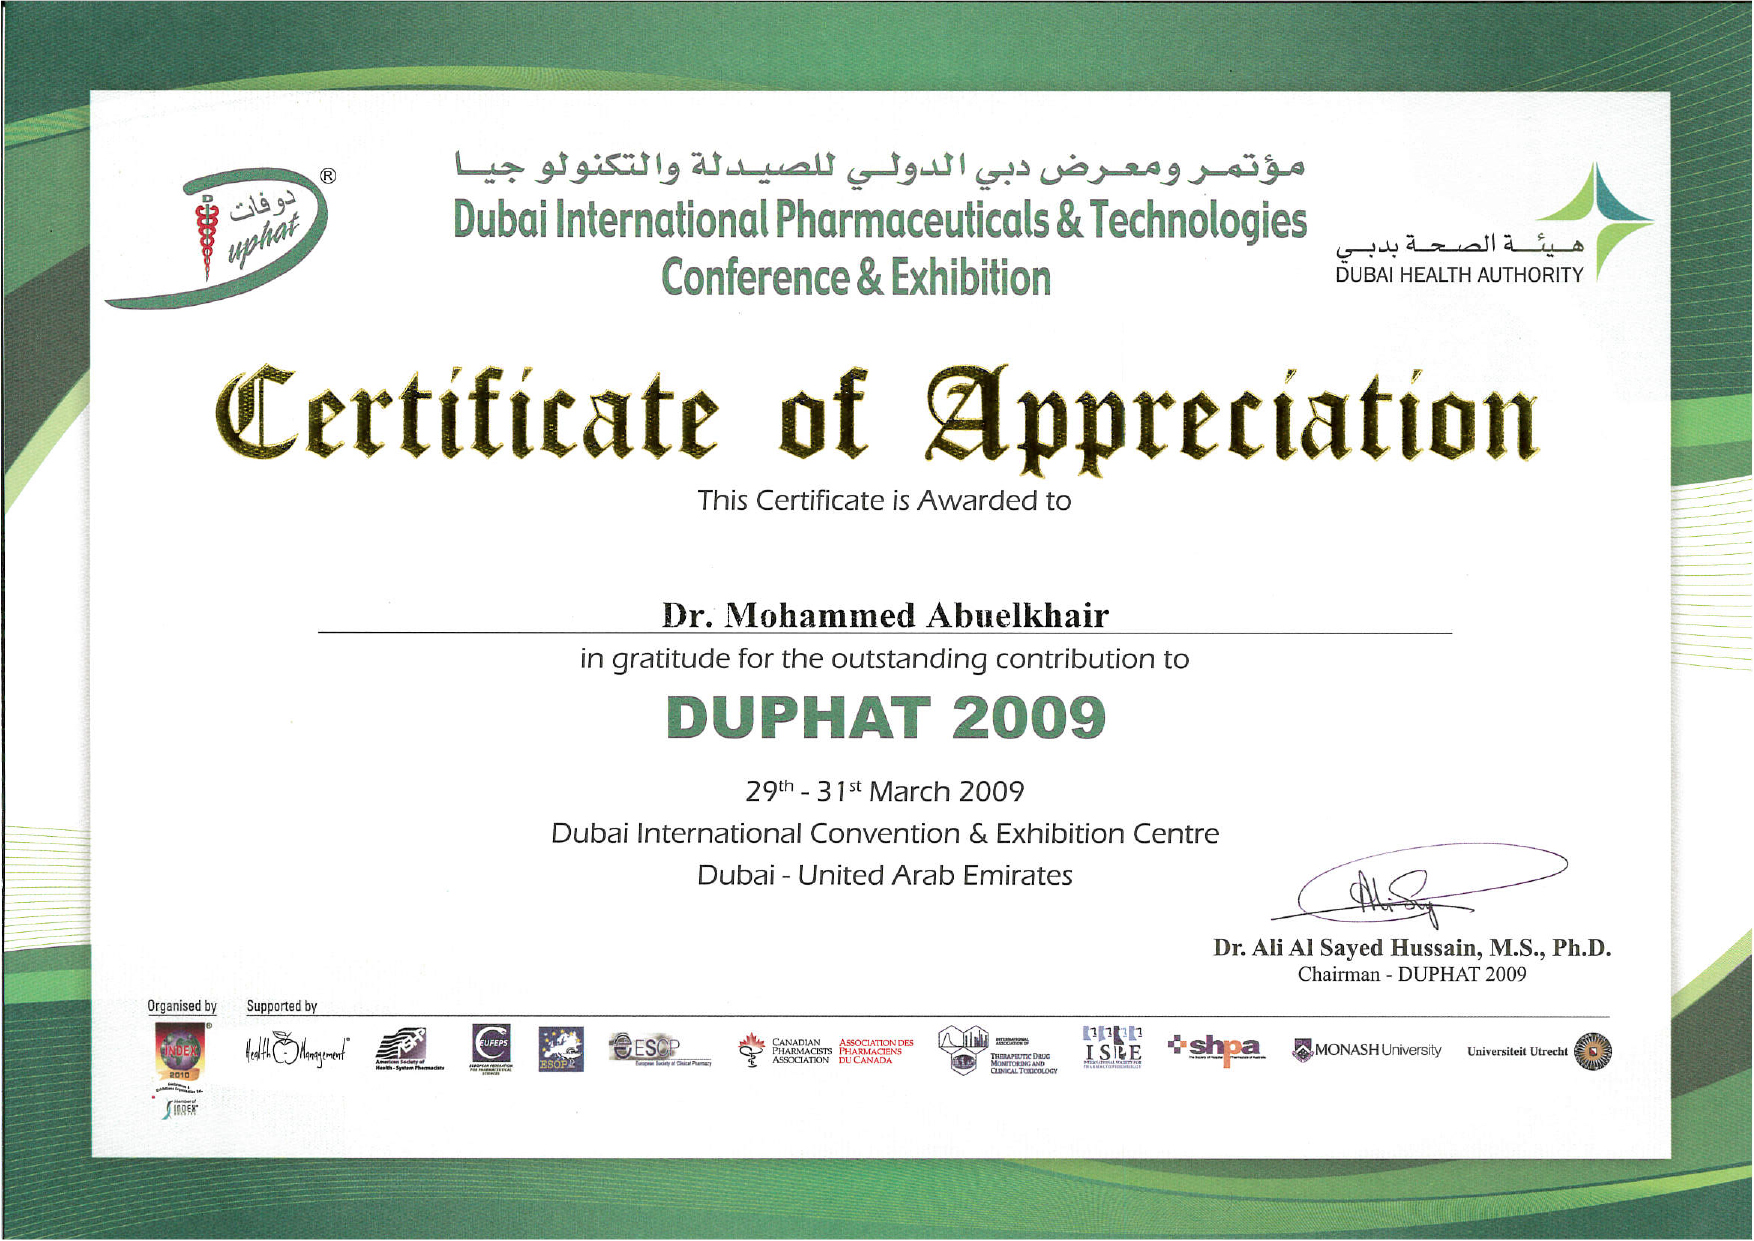 Dr-Abuelkhair-Certificates33.jpg